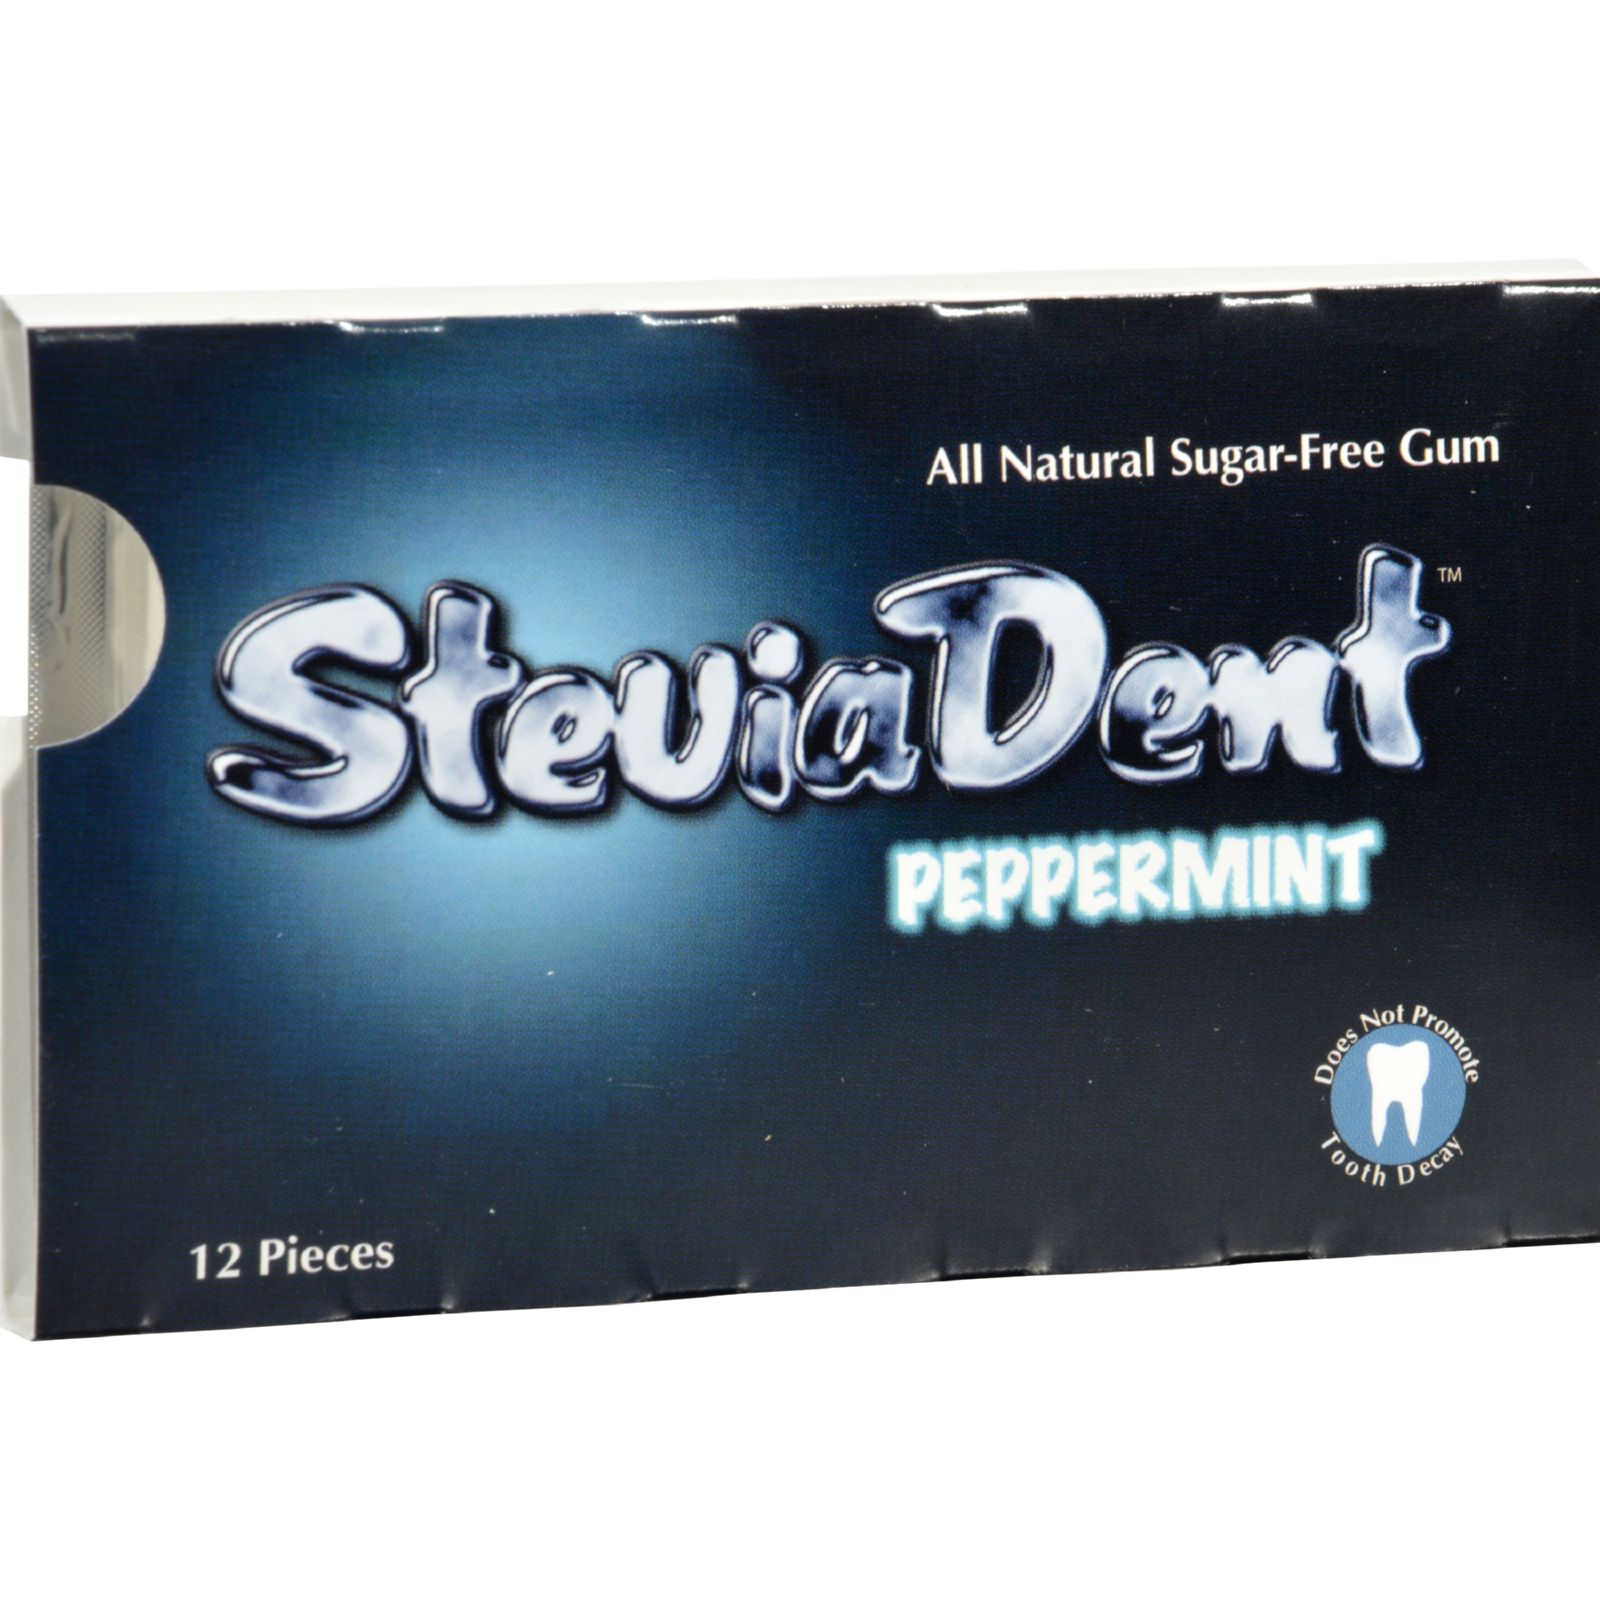 Stevita SteviaDent Peppermint - 12 Pieces - Case of 12